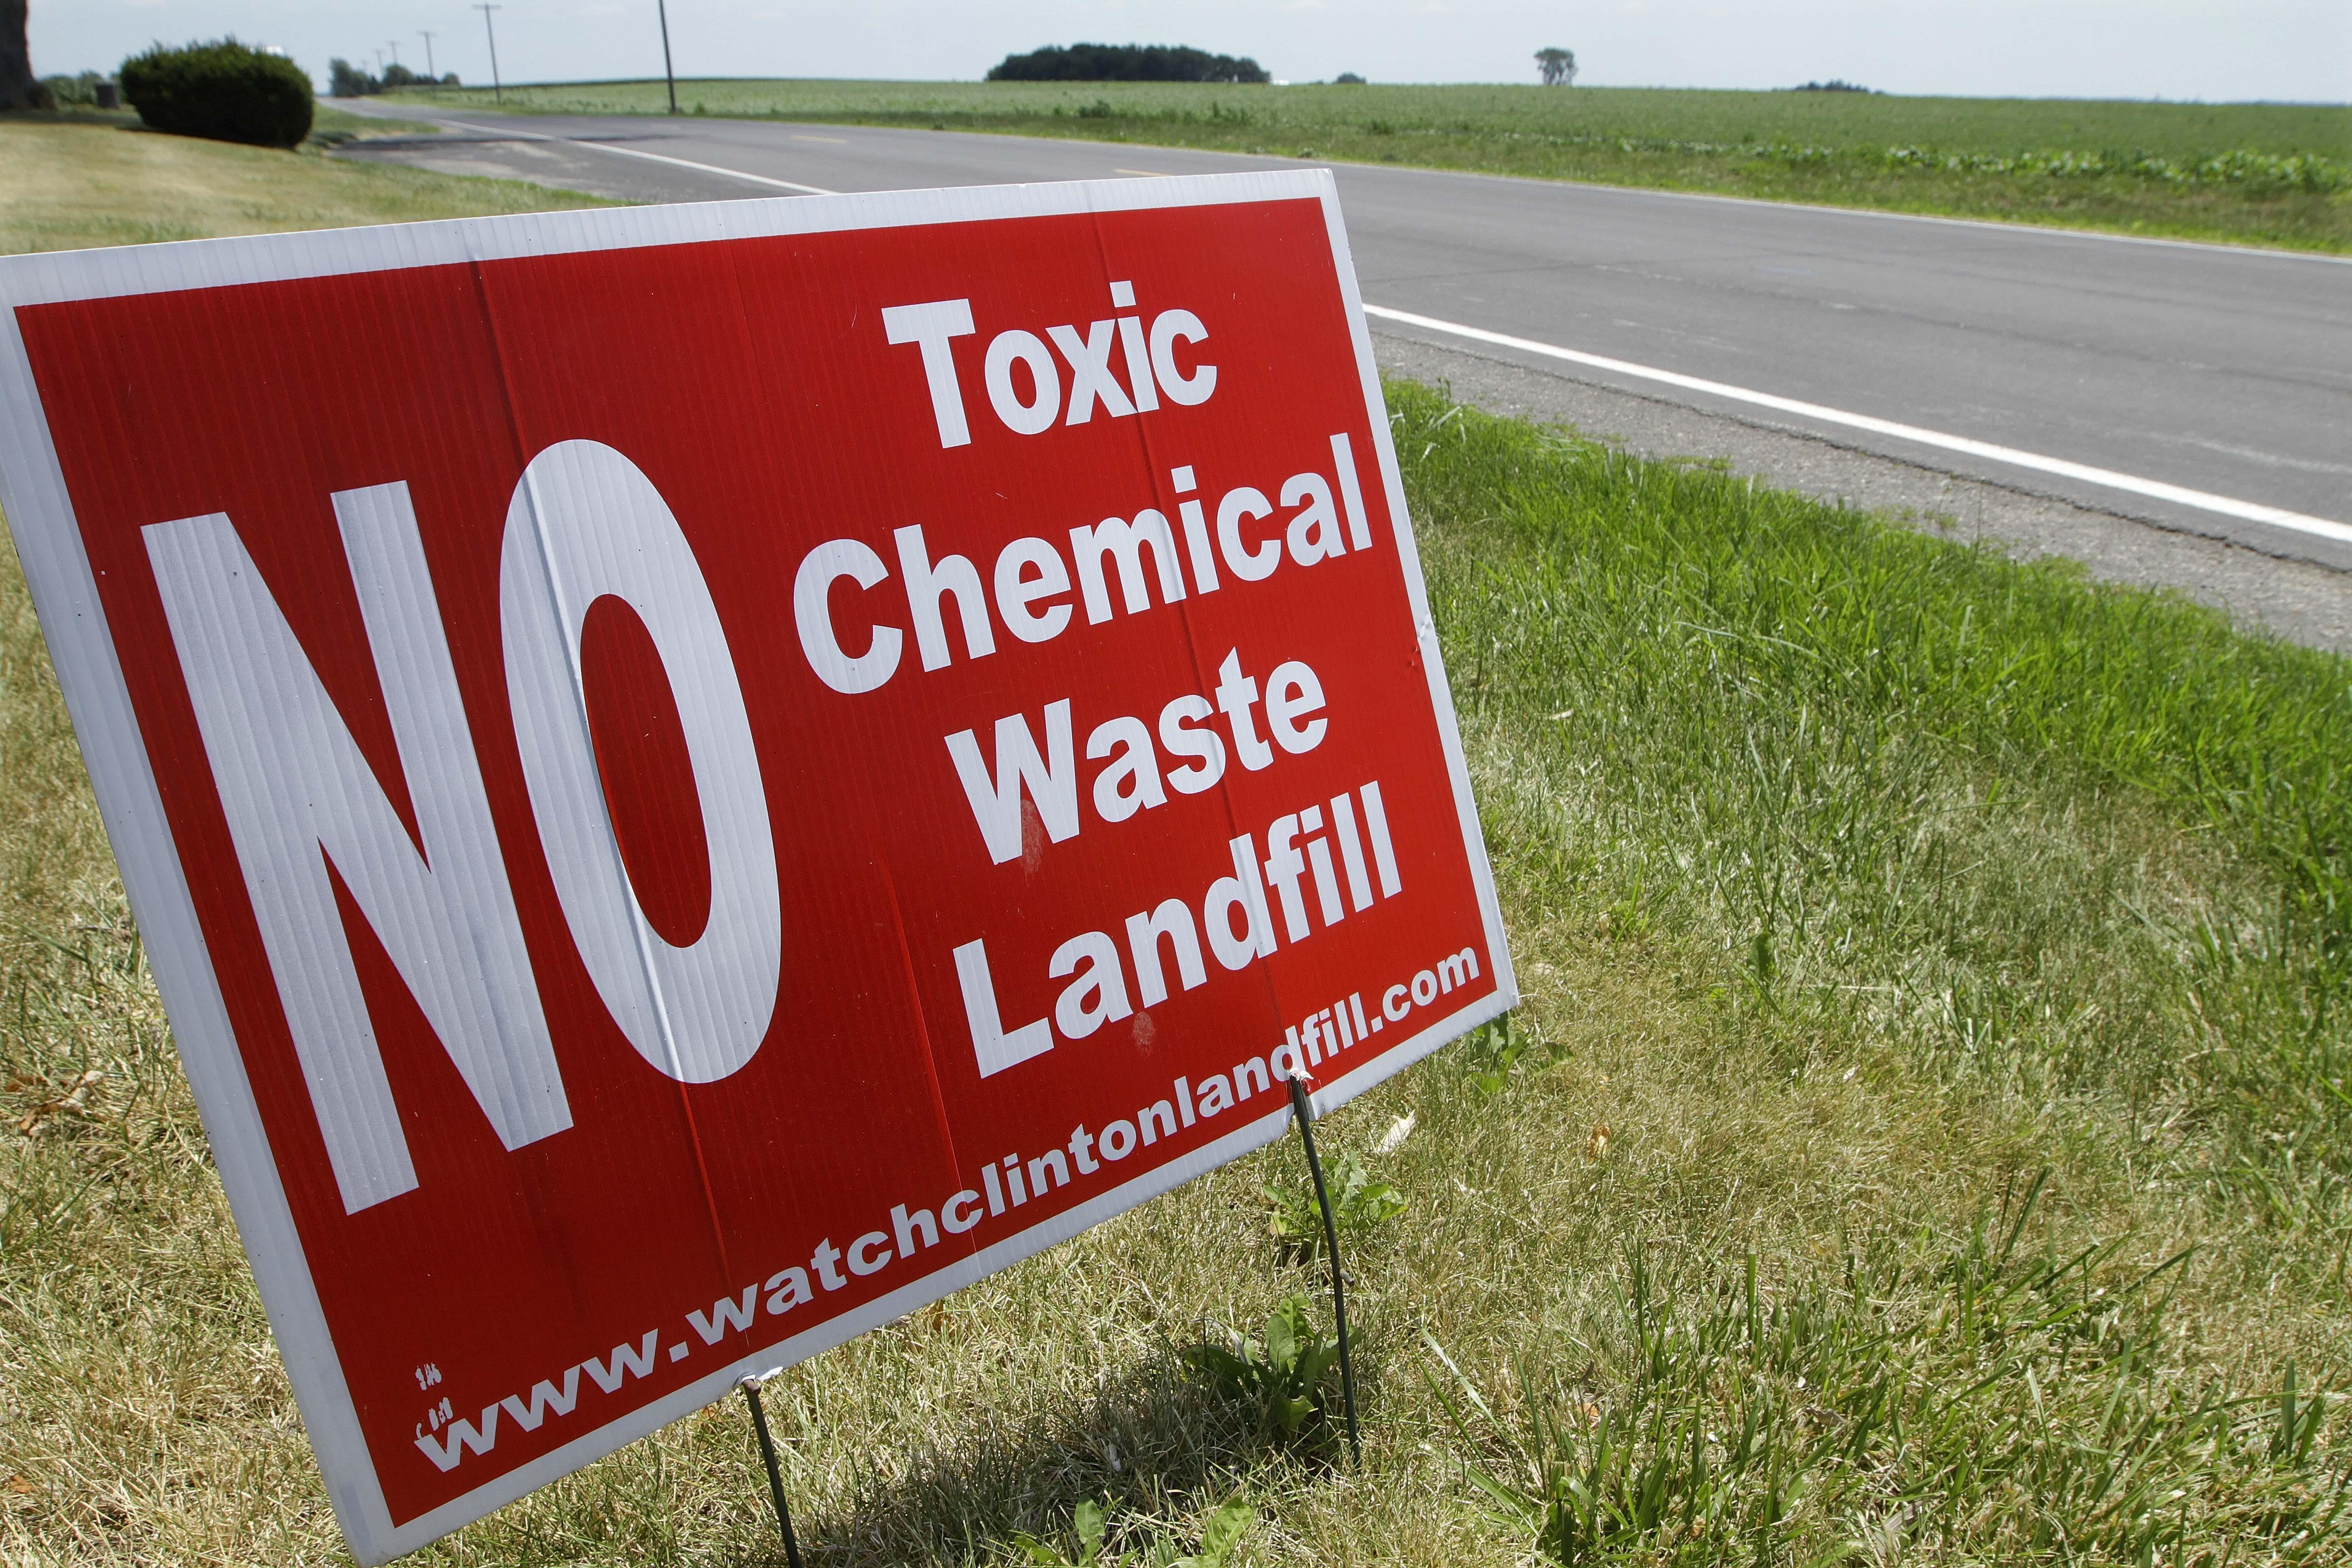 Sign opposing the placing of PCB waste in the Clinton Landfill over the Mahomet Aquifer